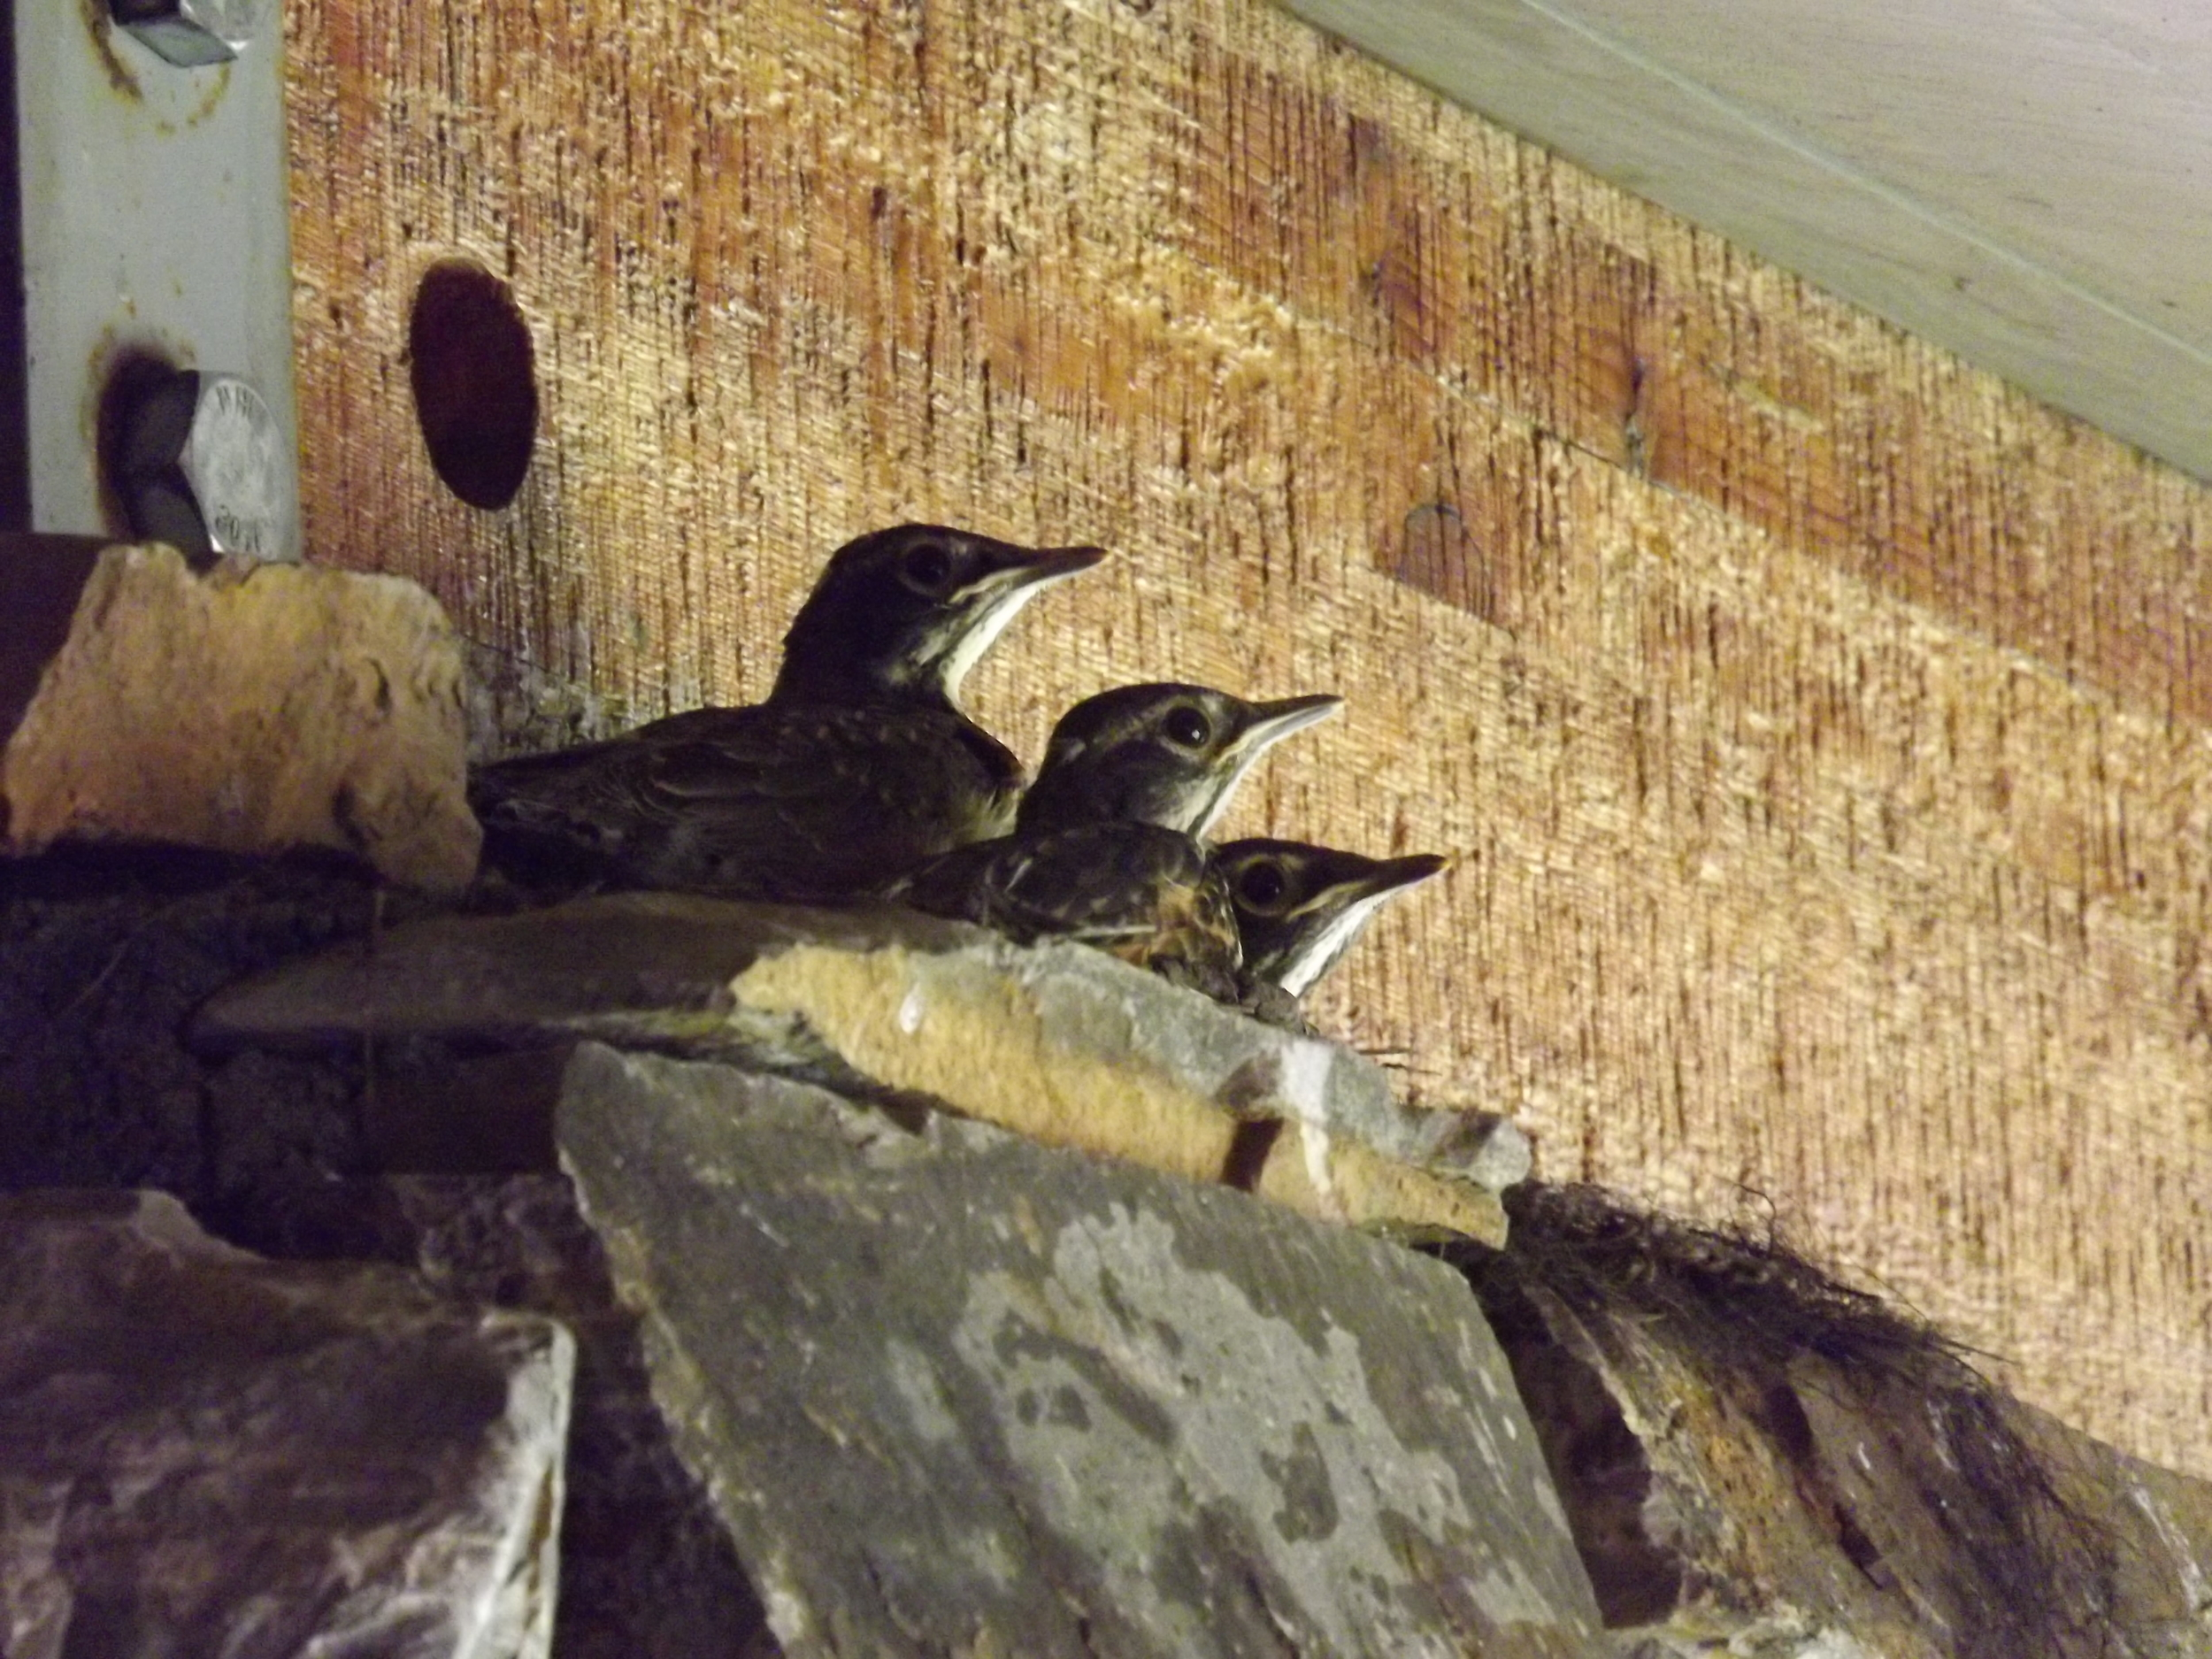 Later the day this picture was taken these baby Robins left the nest for good.